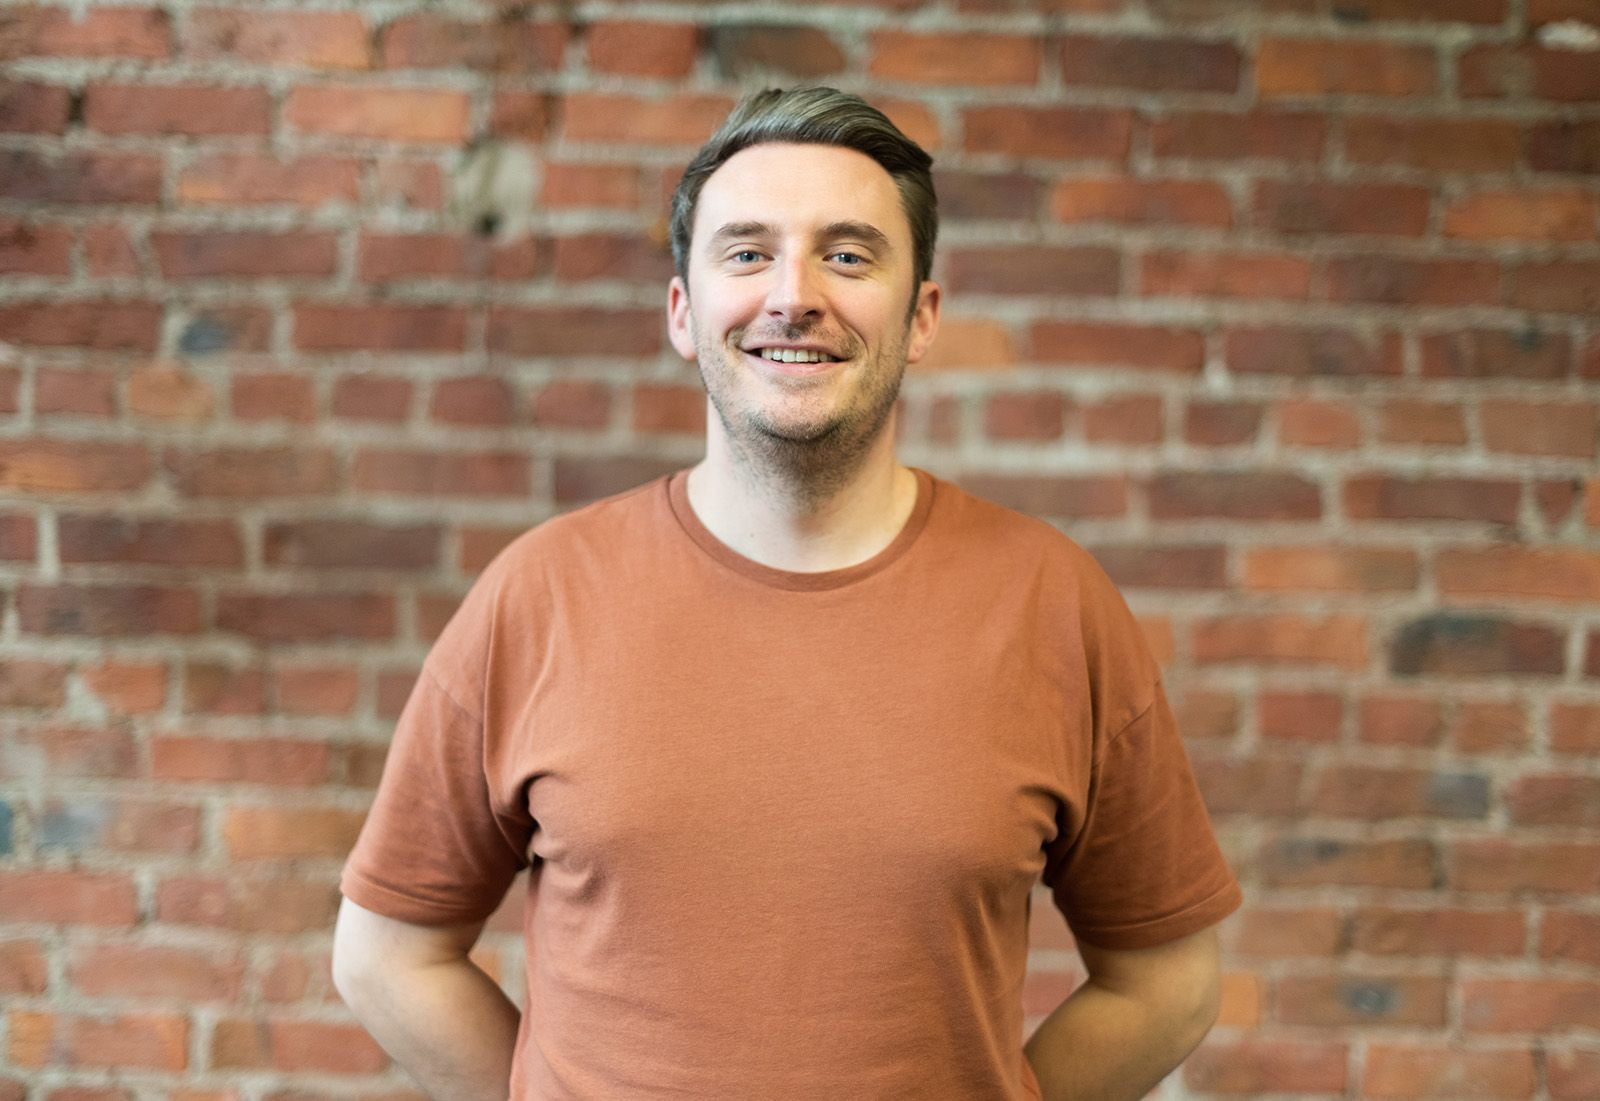 Just in the nick of time — Welcoming Nick Beswick to the RotaCloud team!